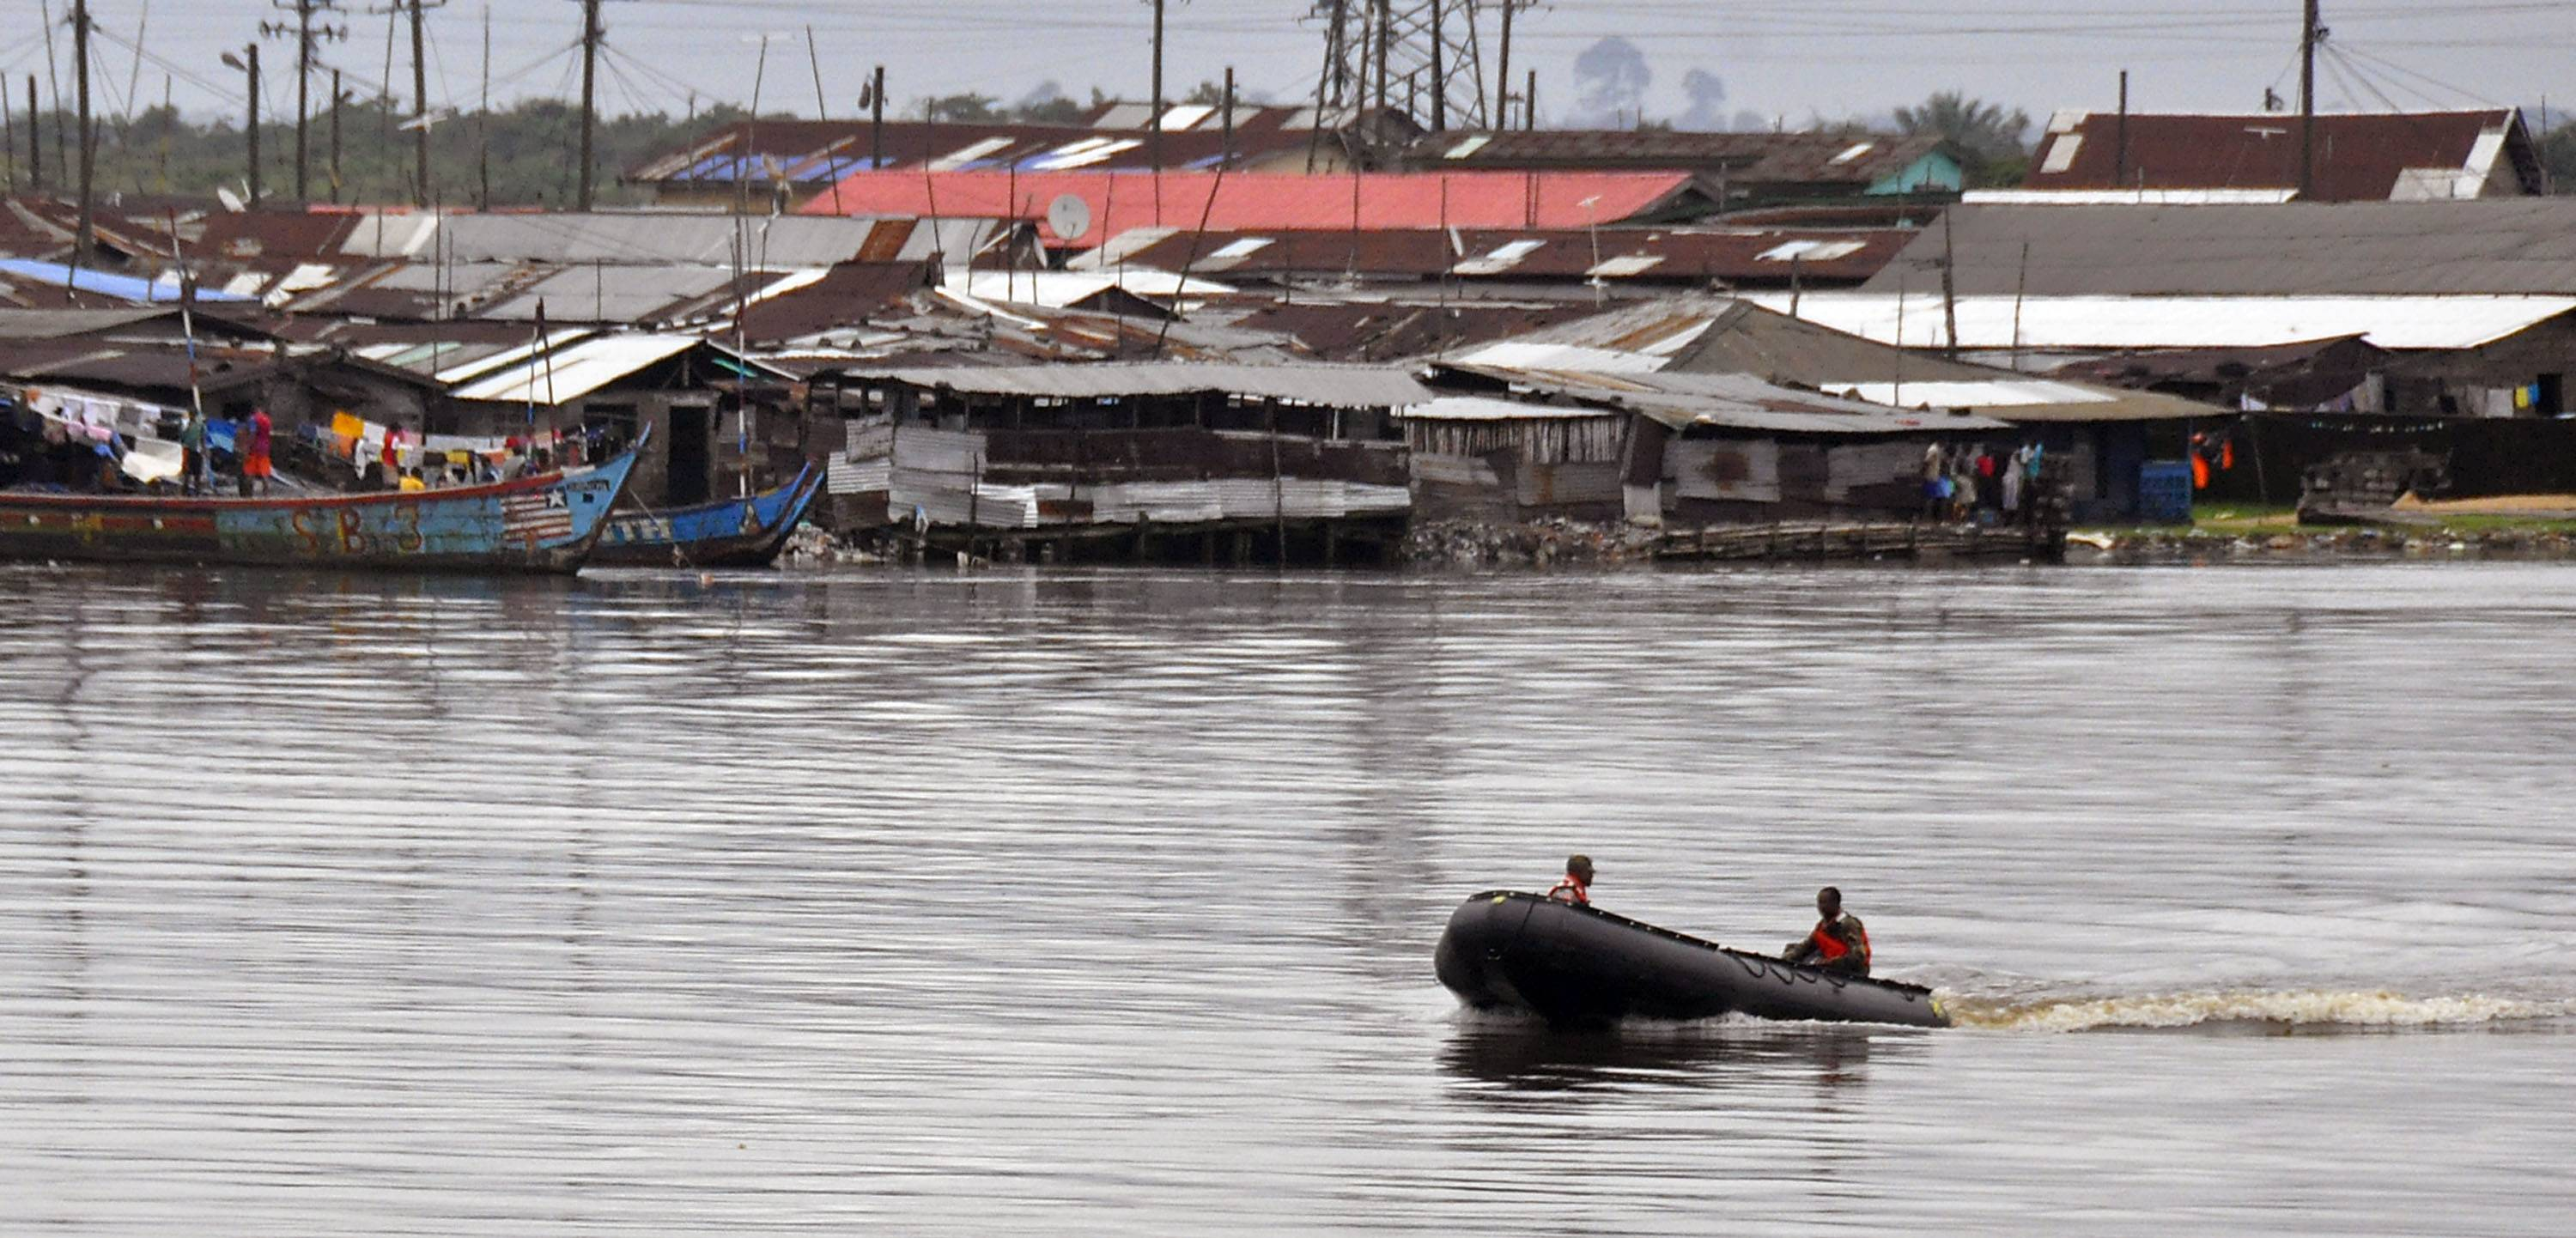 Liberian soldiers patrol the seaside of West Point Wednesday by boat, an area that has been hit hard by the Ebola virus, with local residents not allowed to leave the West Point area, as government forces clamp down on movement to prevent the spread of Ebola, in Monrovia, Liberia.